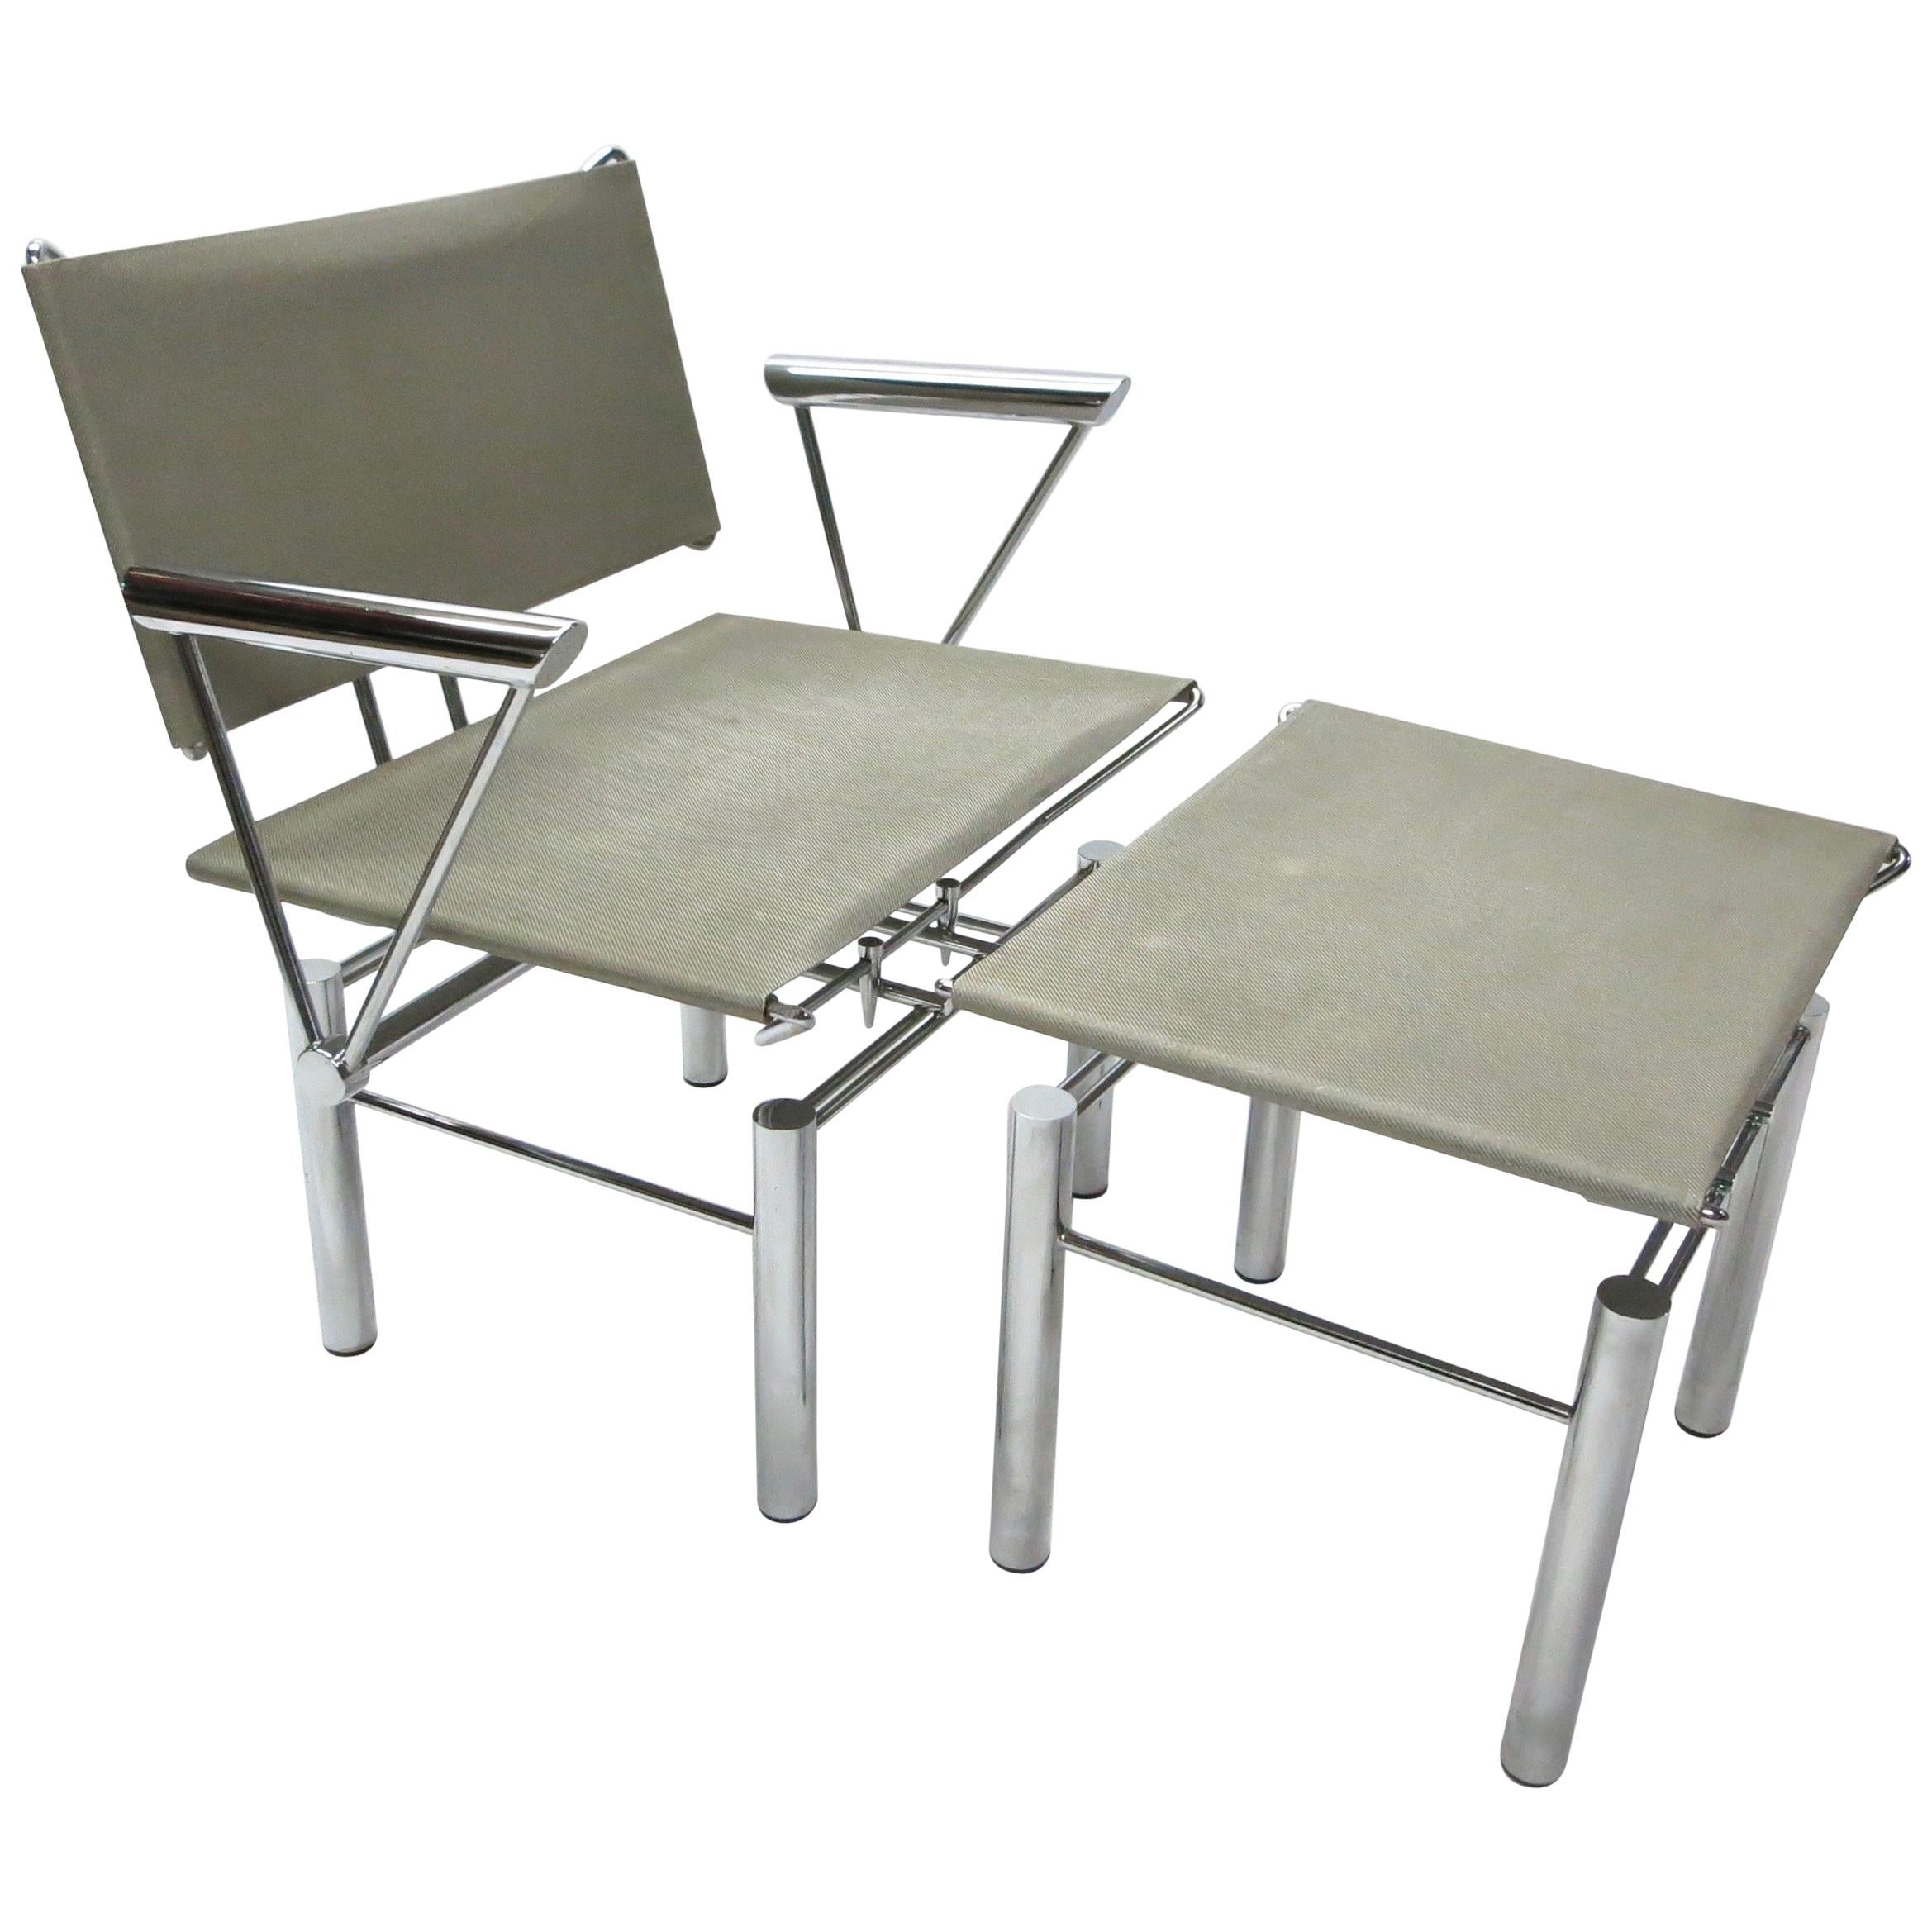 Woven metal furniture Outdoor Woven Metal And Steel Series 8600 Chair And Ottoman By Hans Ullrich Bitsch 1982 For Aliexpress Woven Metal And Steel Series 8600 Chair And Ottoman By Hans Ullrich